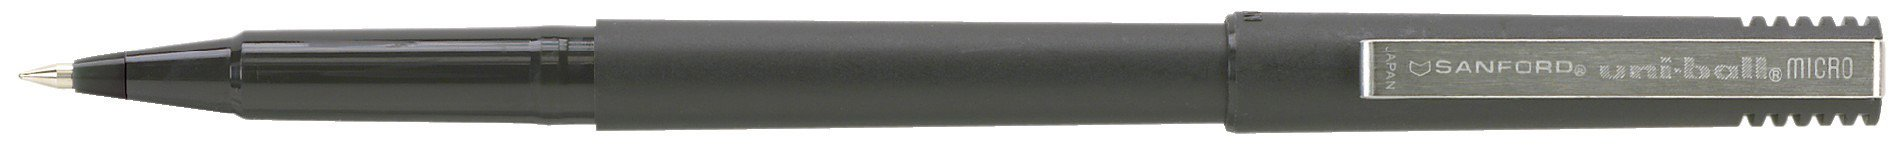 uni-ball Roller Pens, Micro Point (0.5mm), Black, 72 Count by Uni-ball (Image #3)